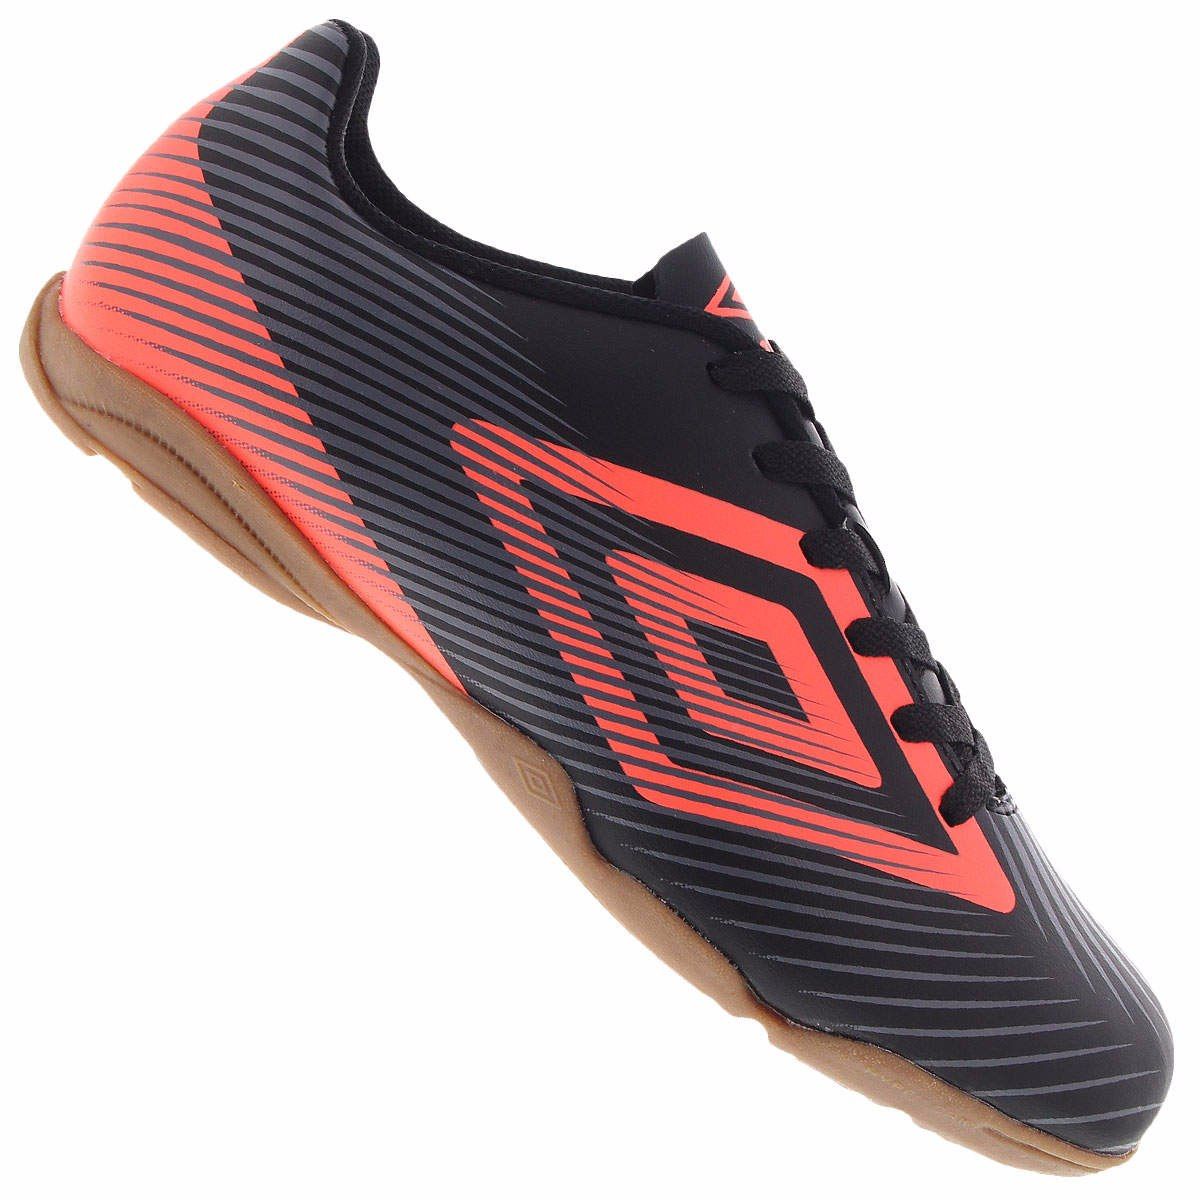 57d40ca9c2977 chuteira umbro futsal indoor speed ll  barata. Carregando zoom.